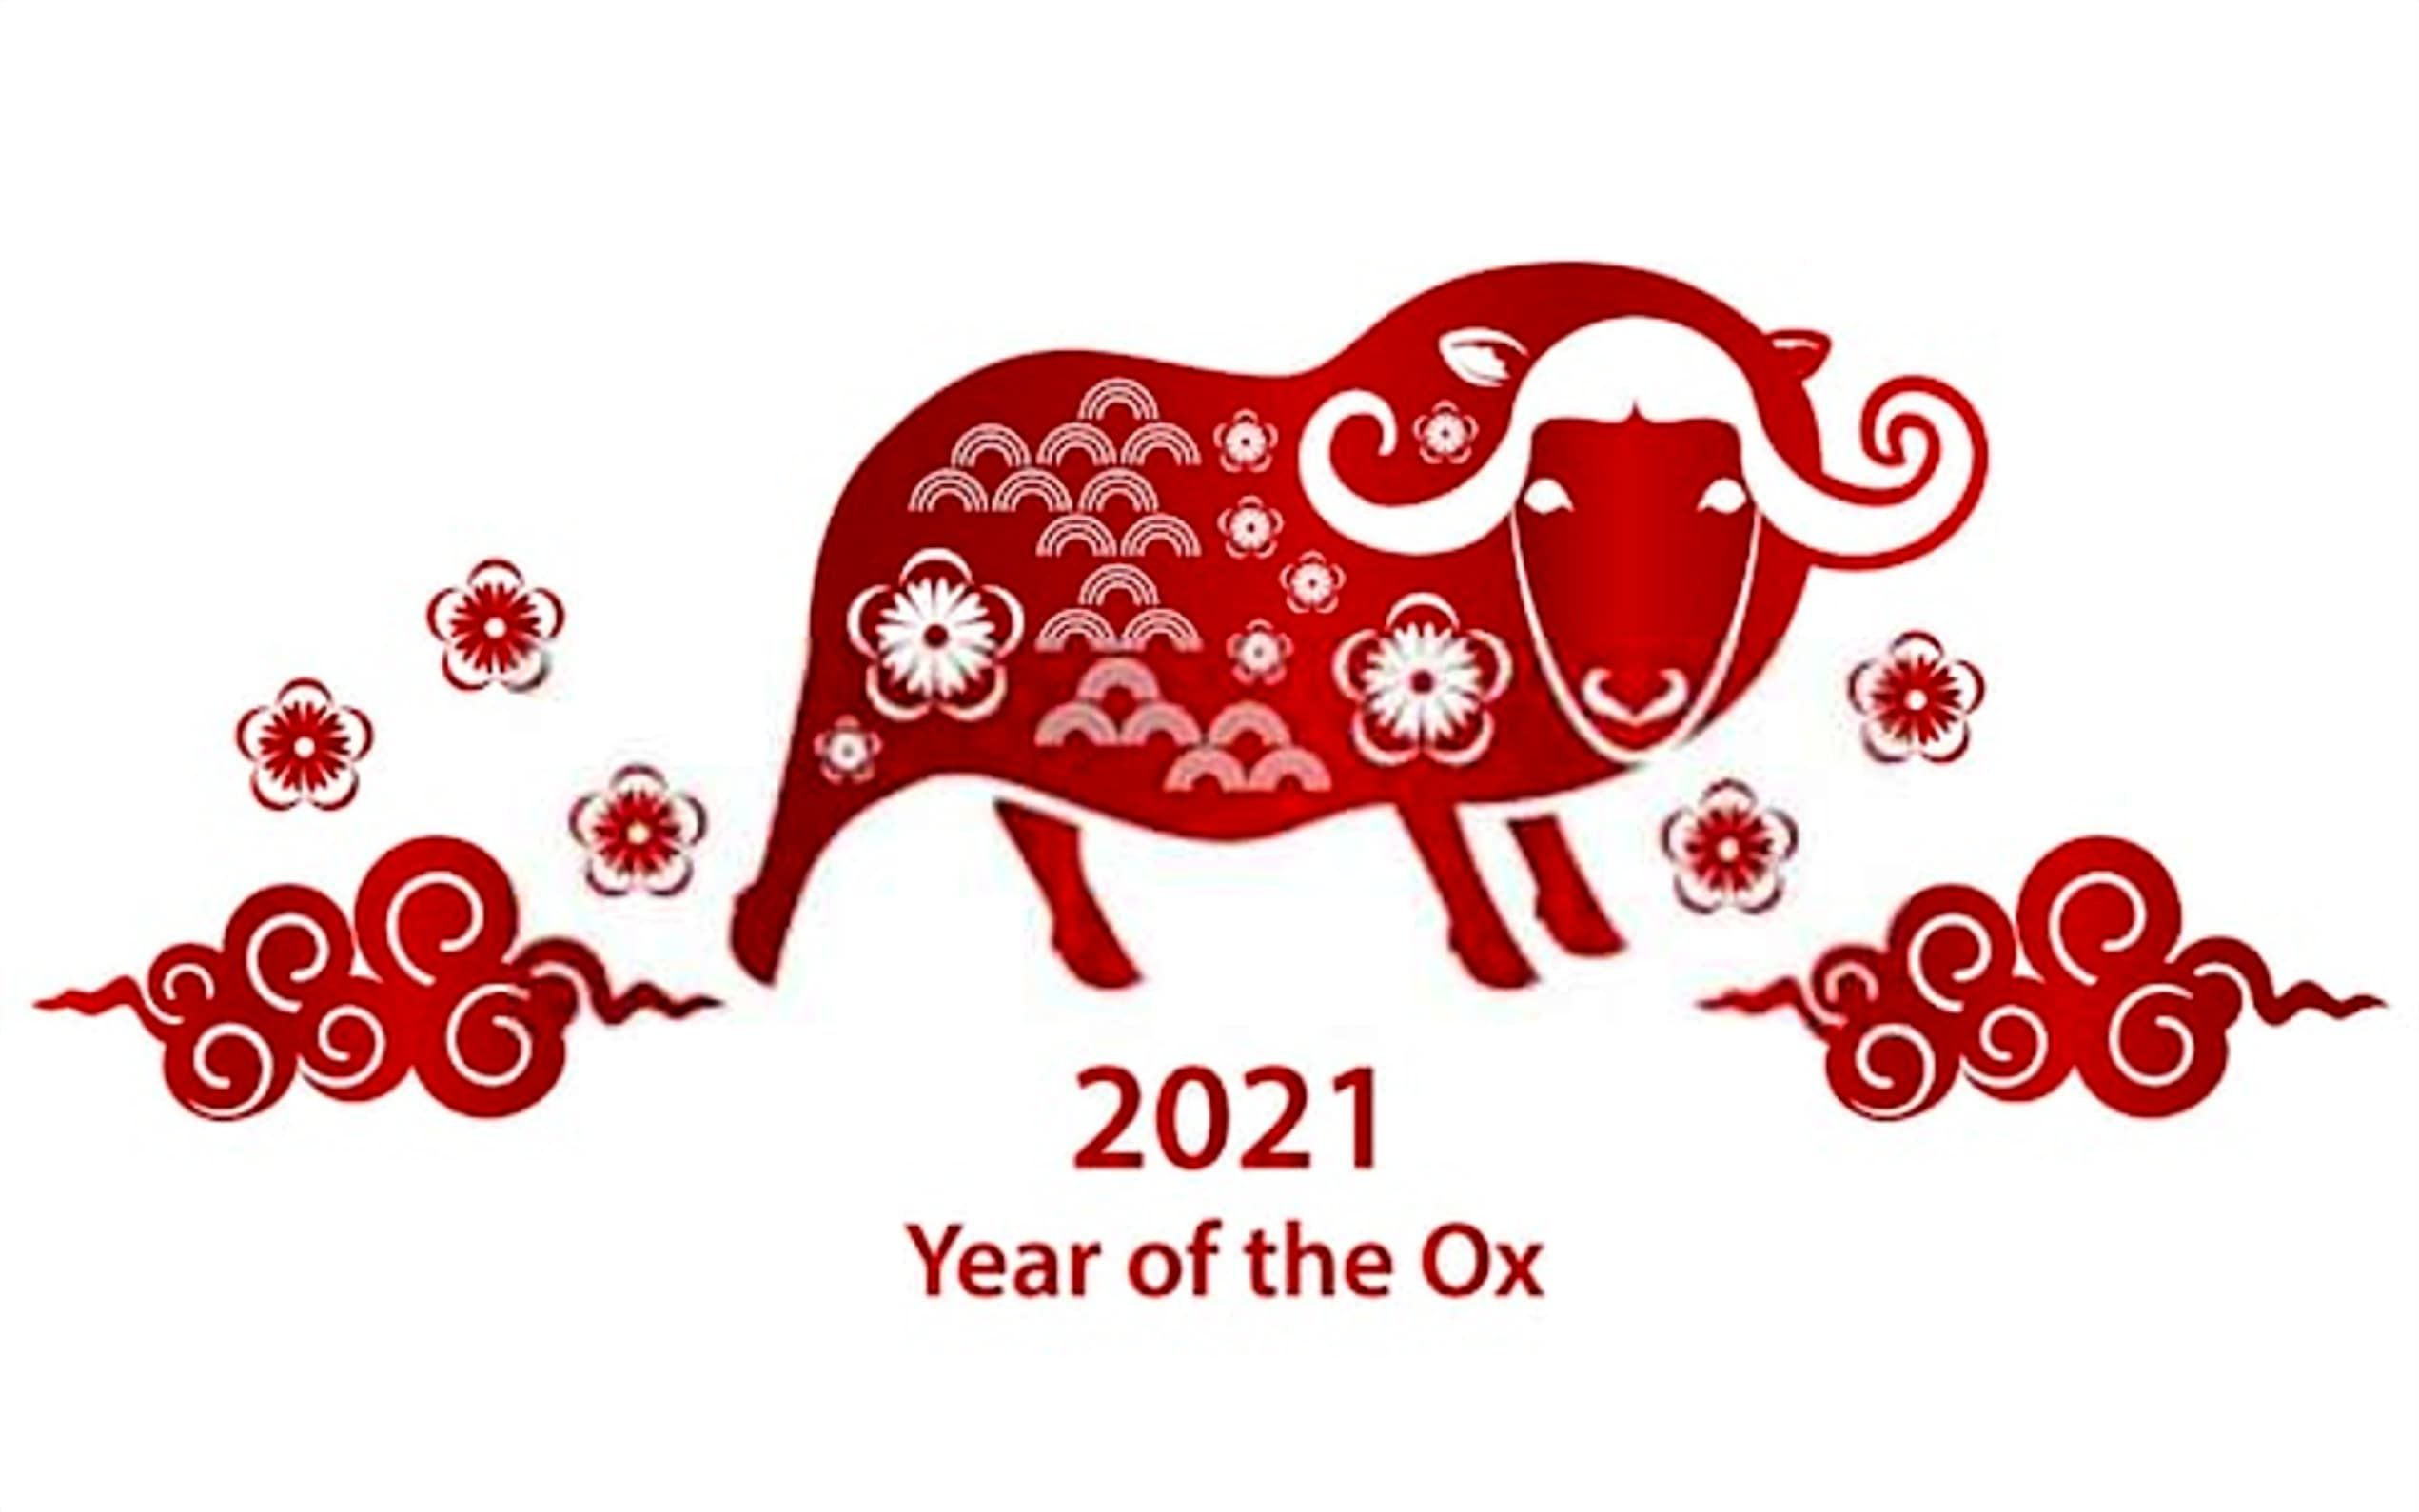 Chinese New Year 2021 Images and Wallpaper in 2020 | Year of the cow,  Christmas flyer template, Happy chinese new year